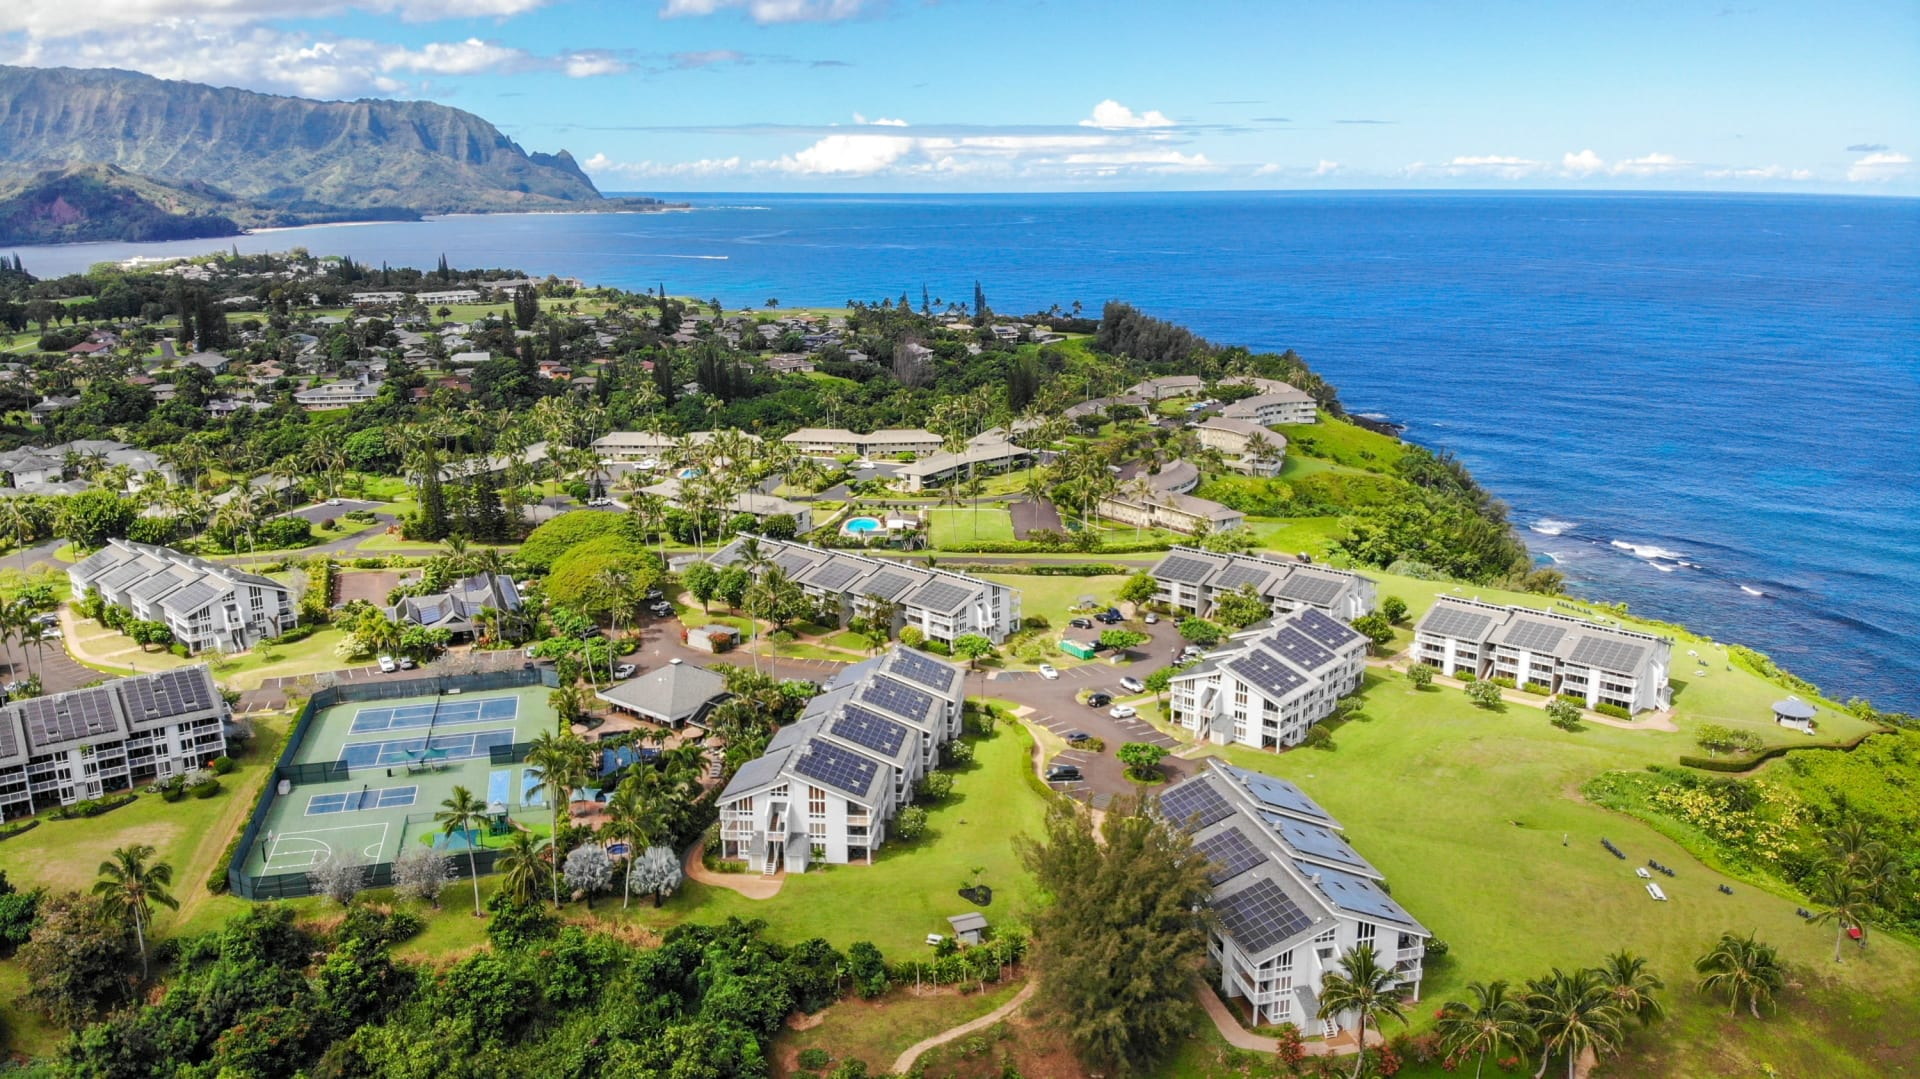 Kauai's Sheraton and the Cliffs Gear Up for April 5 Reopening